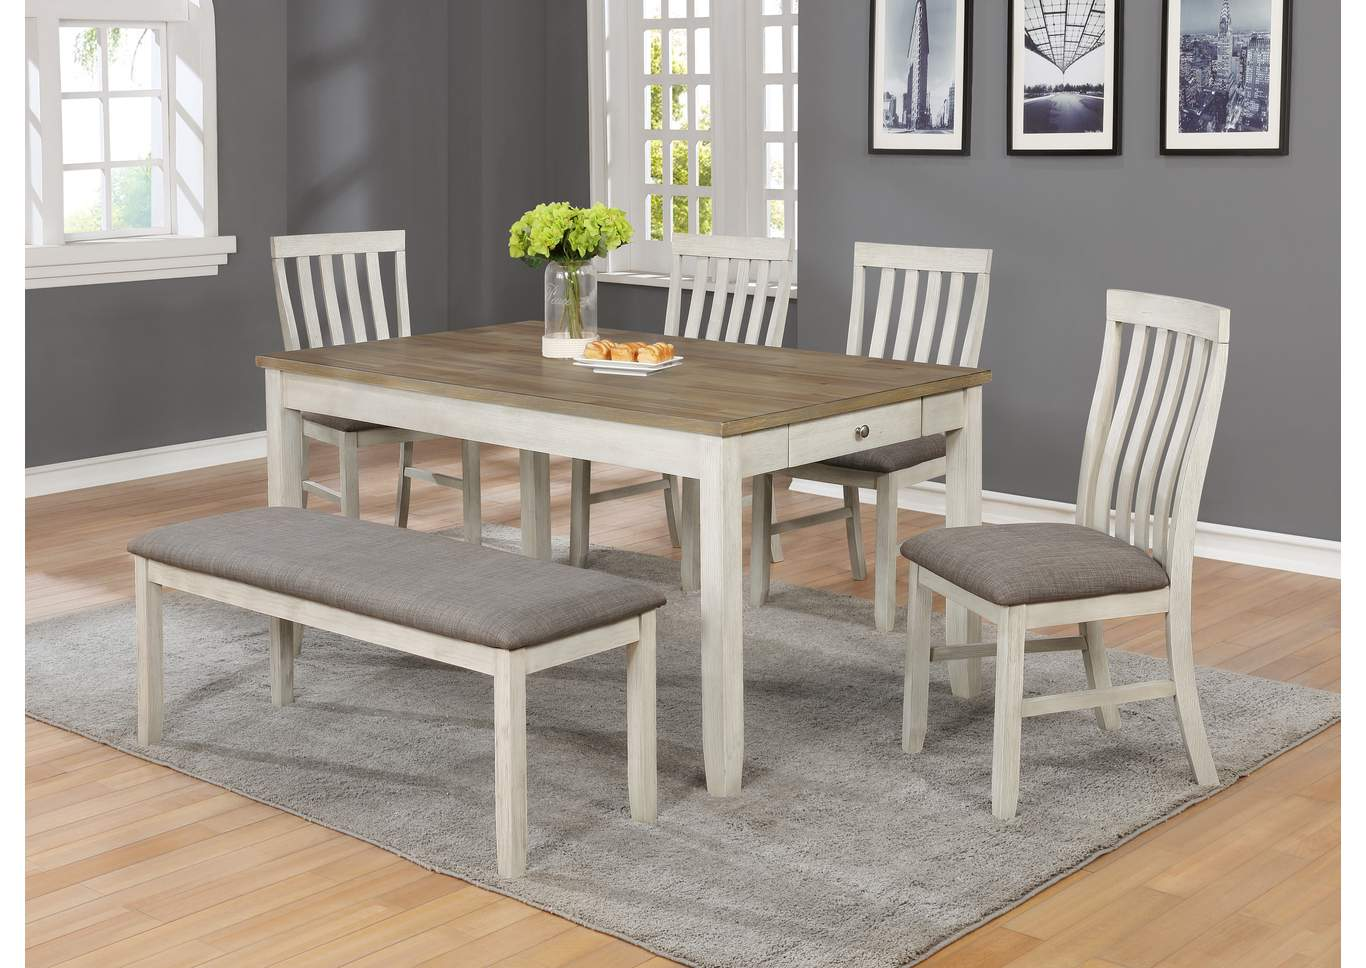 Nina Brown Dining Table W 4 Side Chairs And A Bench Kirk Imports